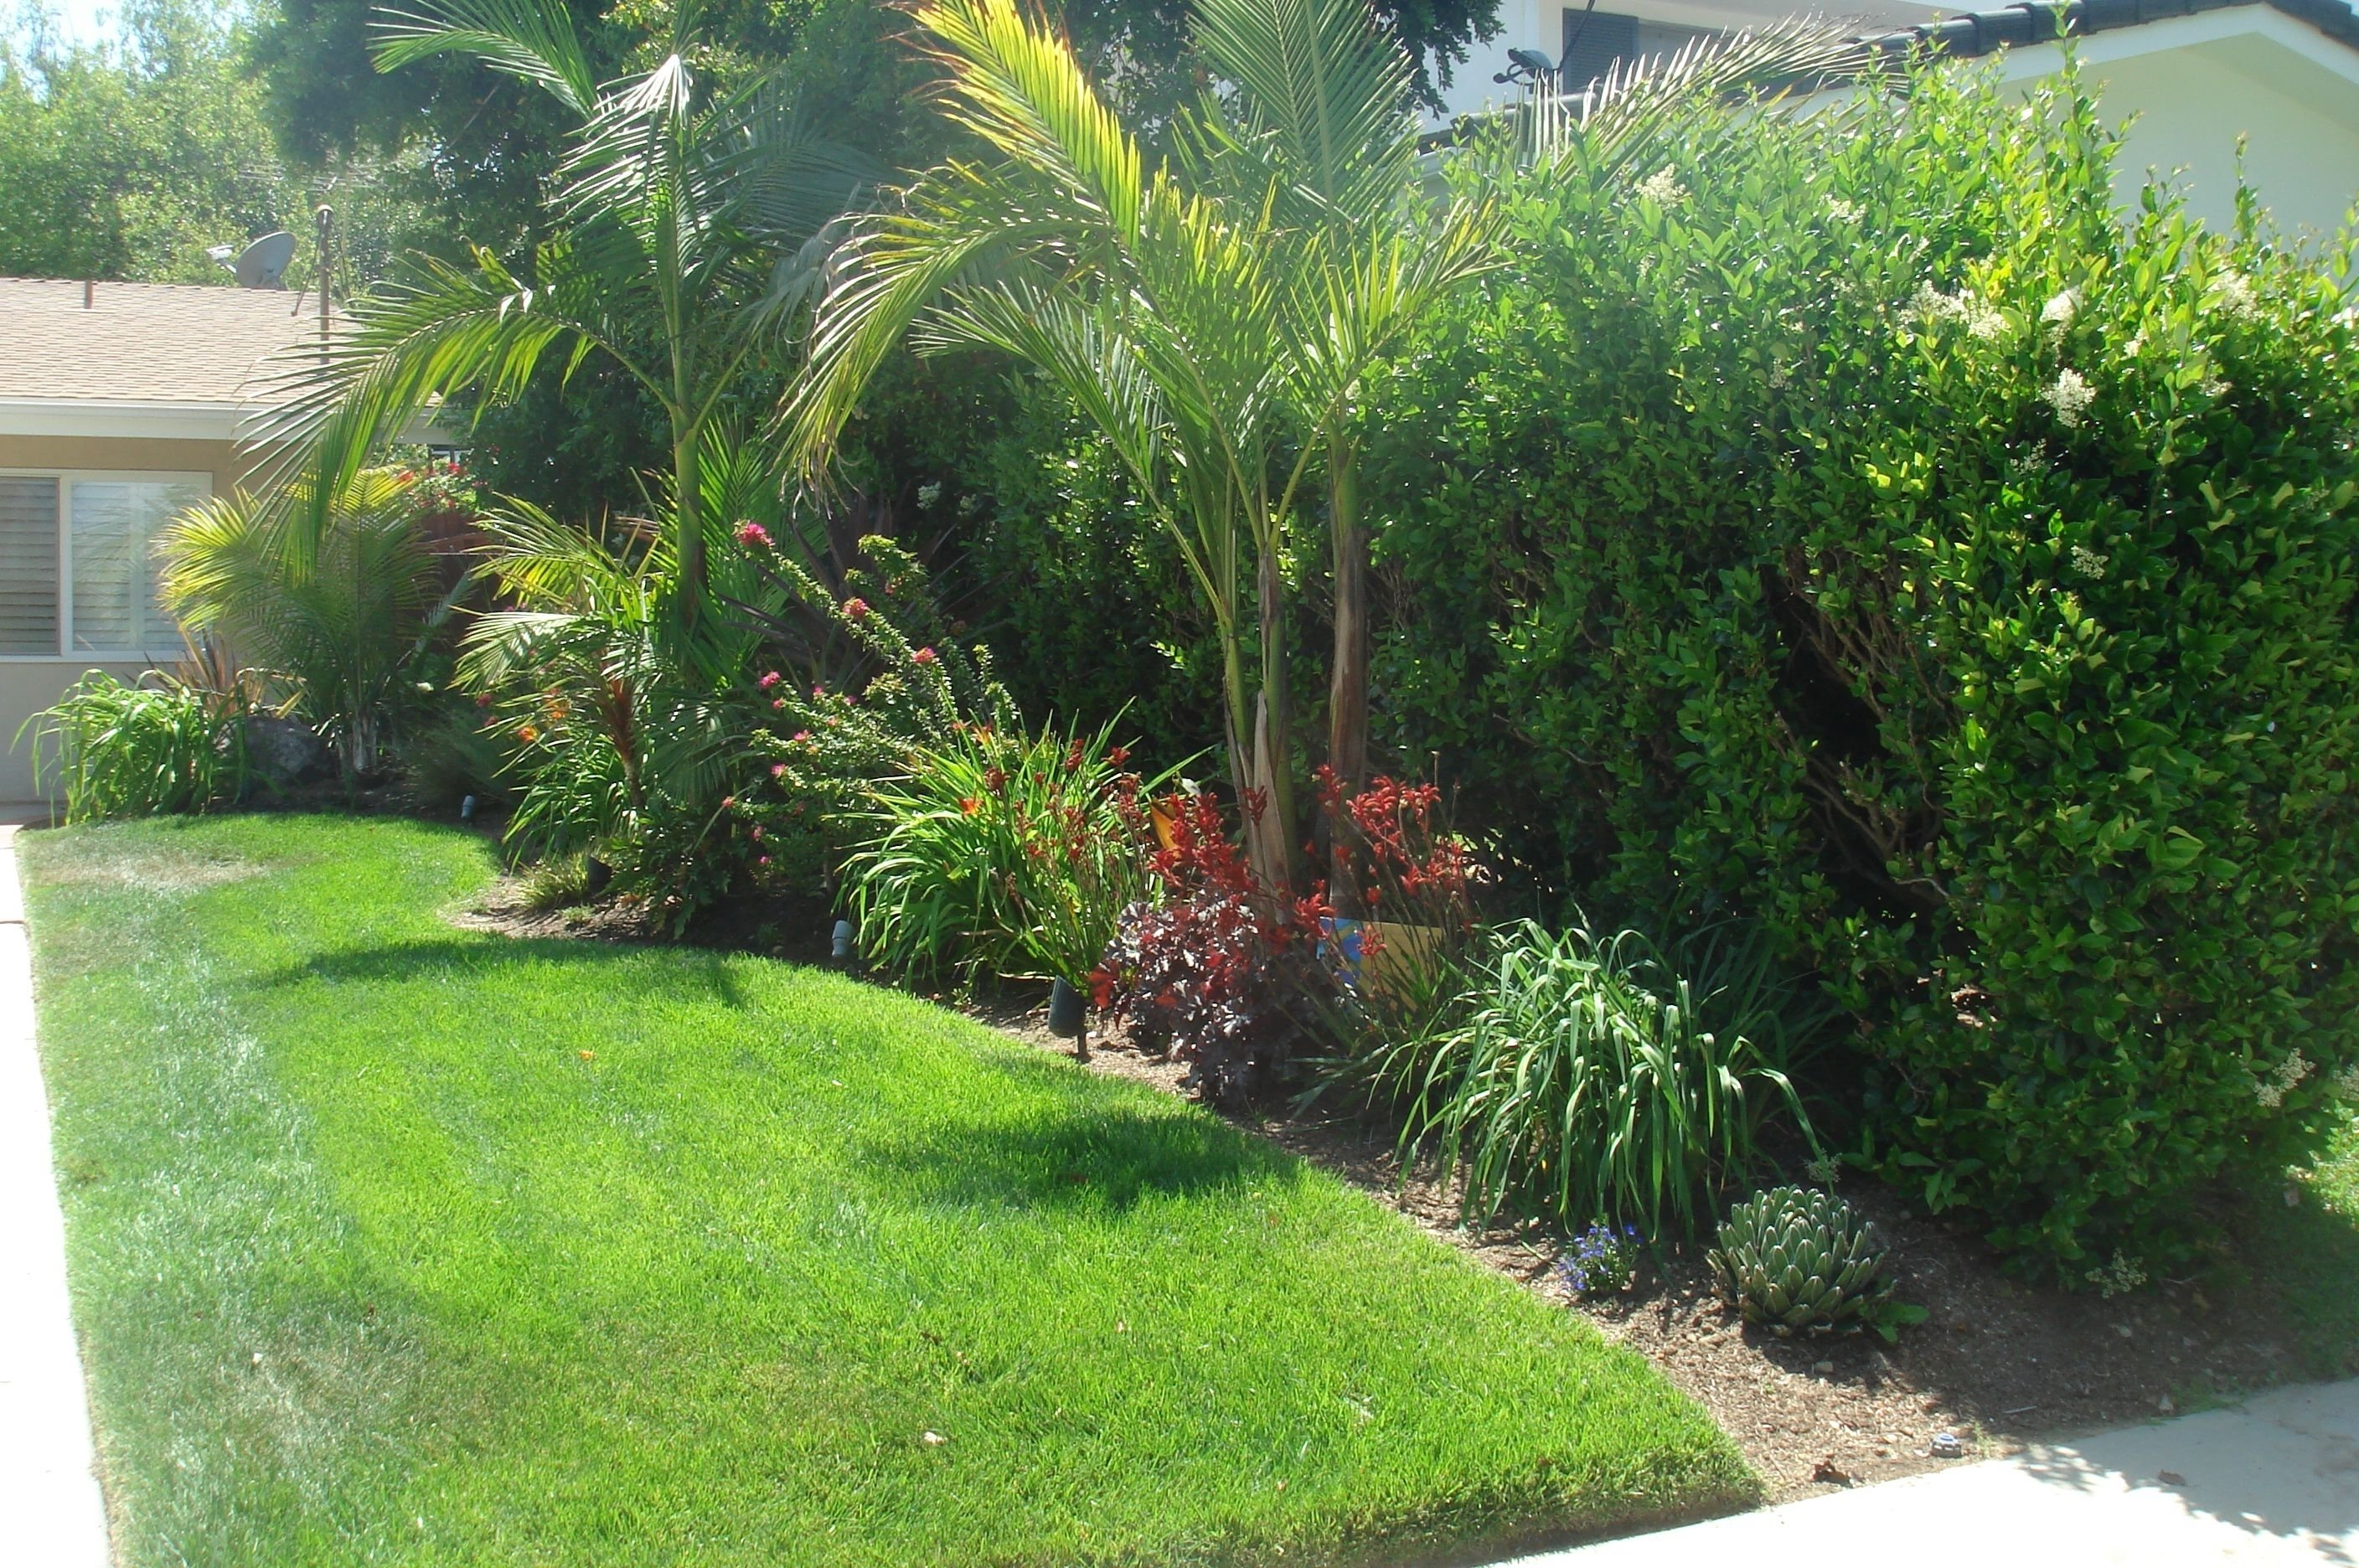 10 Attractive Tropical Landscaping Ideas For Front Yard small backyard tropical landscaping ideas how to design tropical 2020